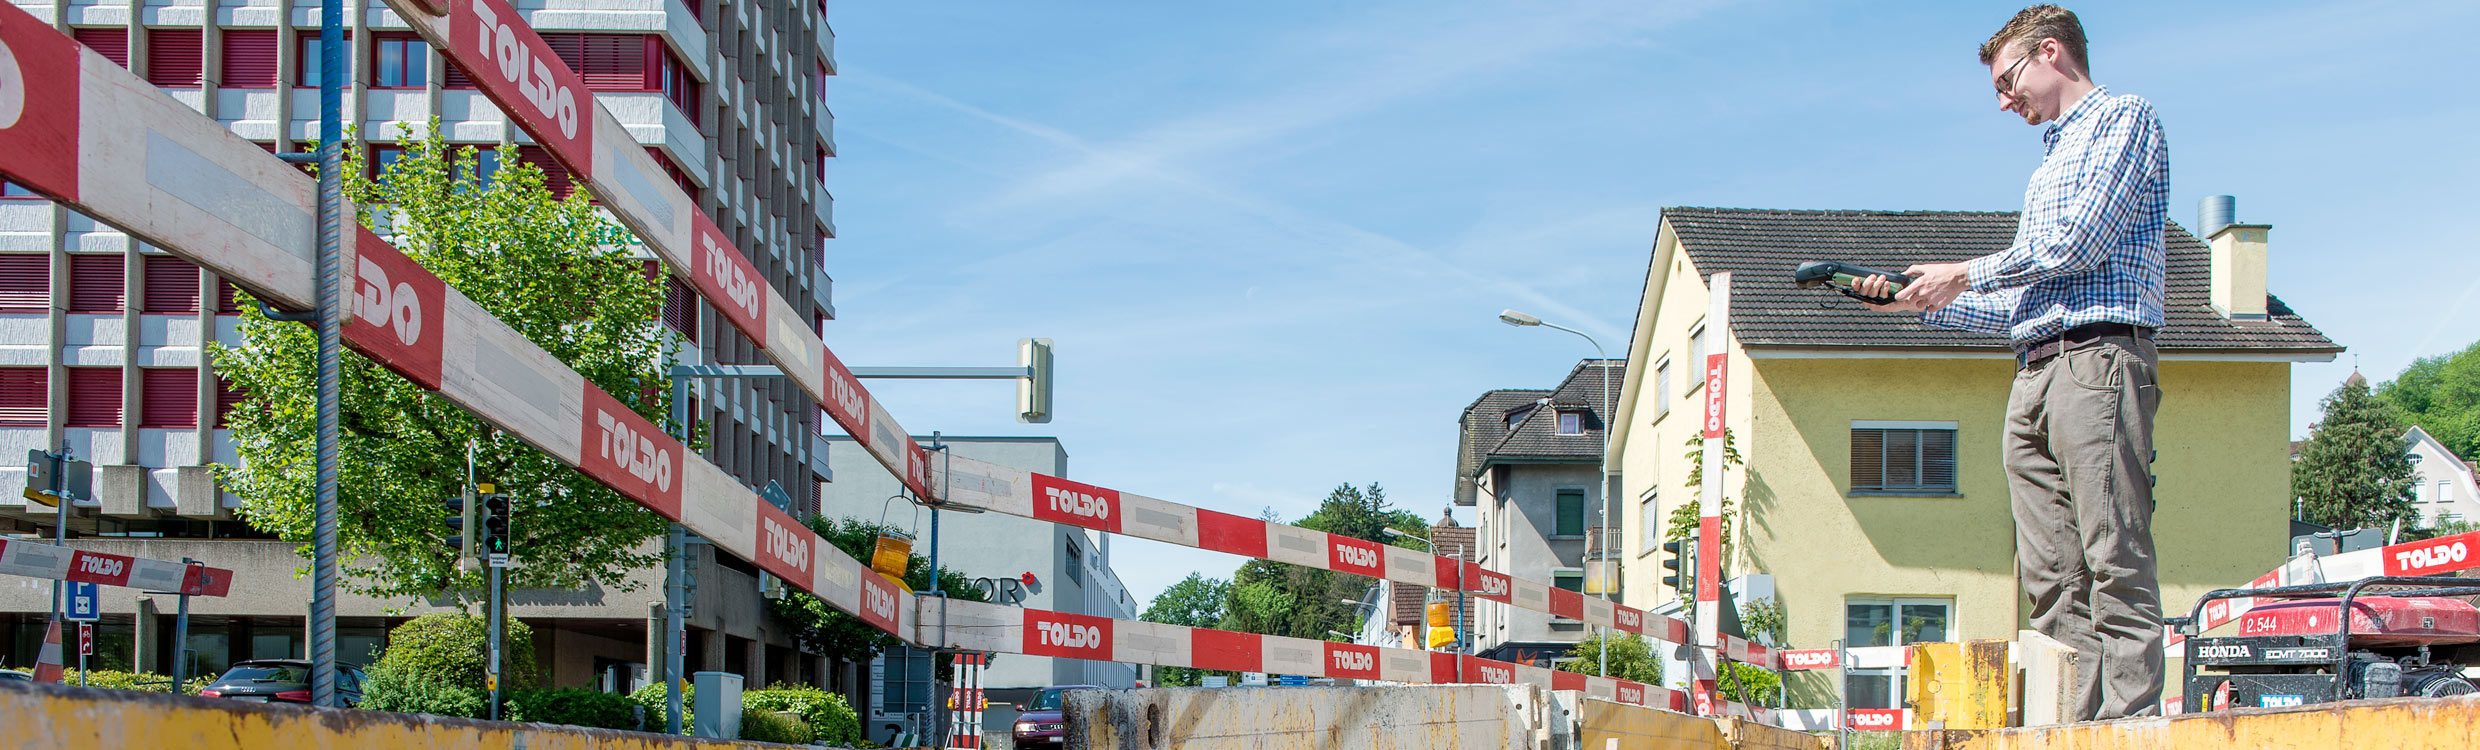 HxGN SmartNet - Satellite Positioning Services for Asset Inventory